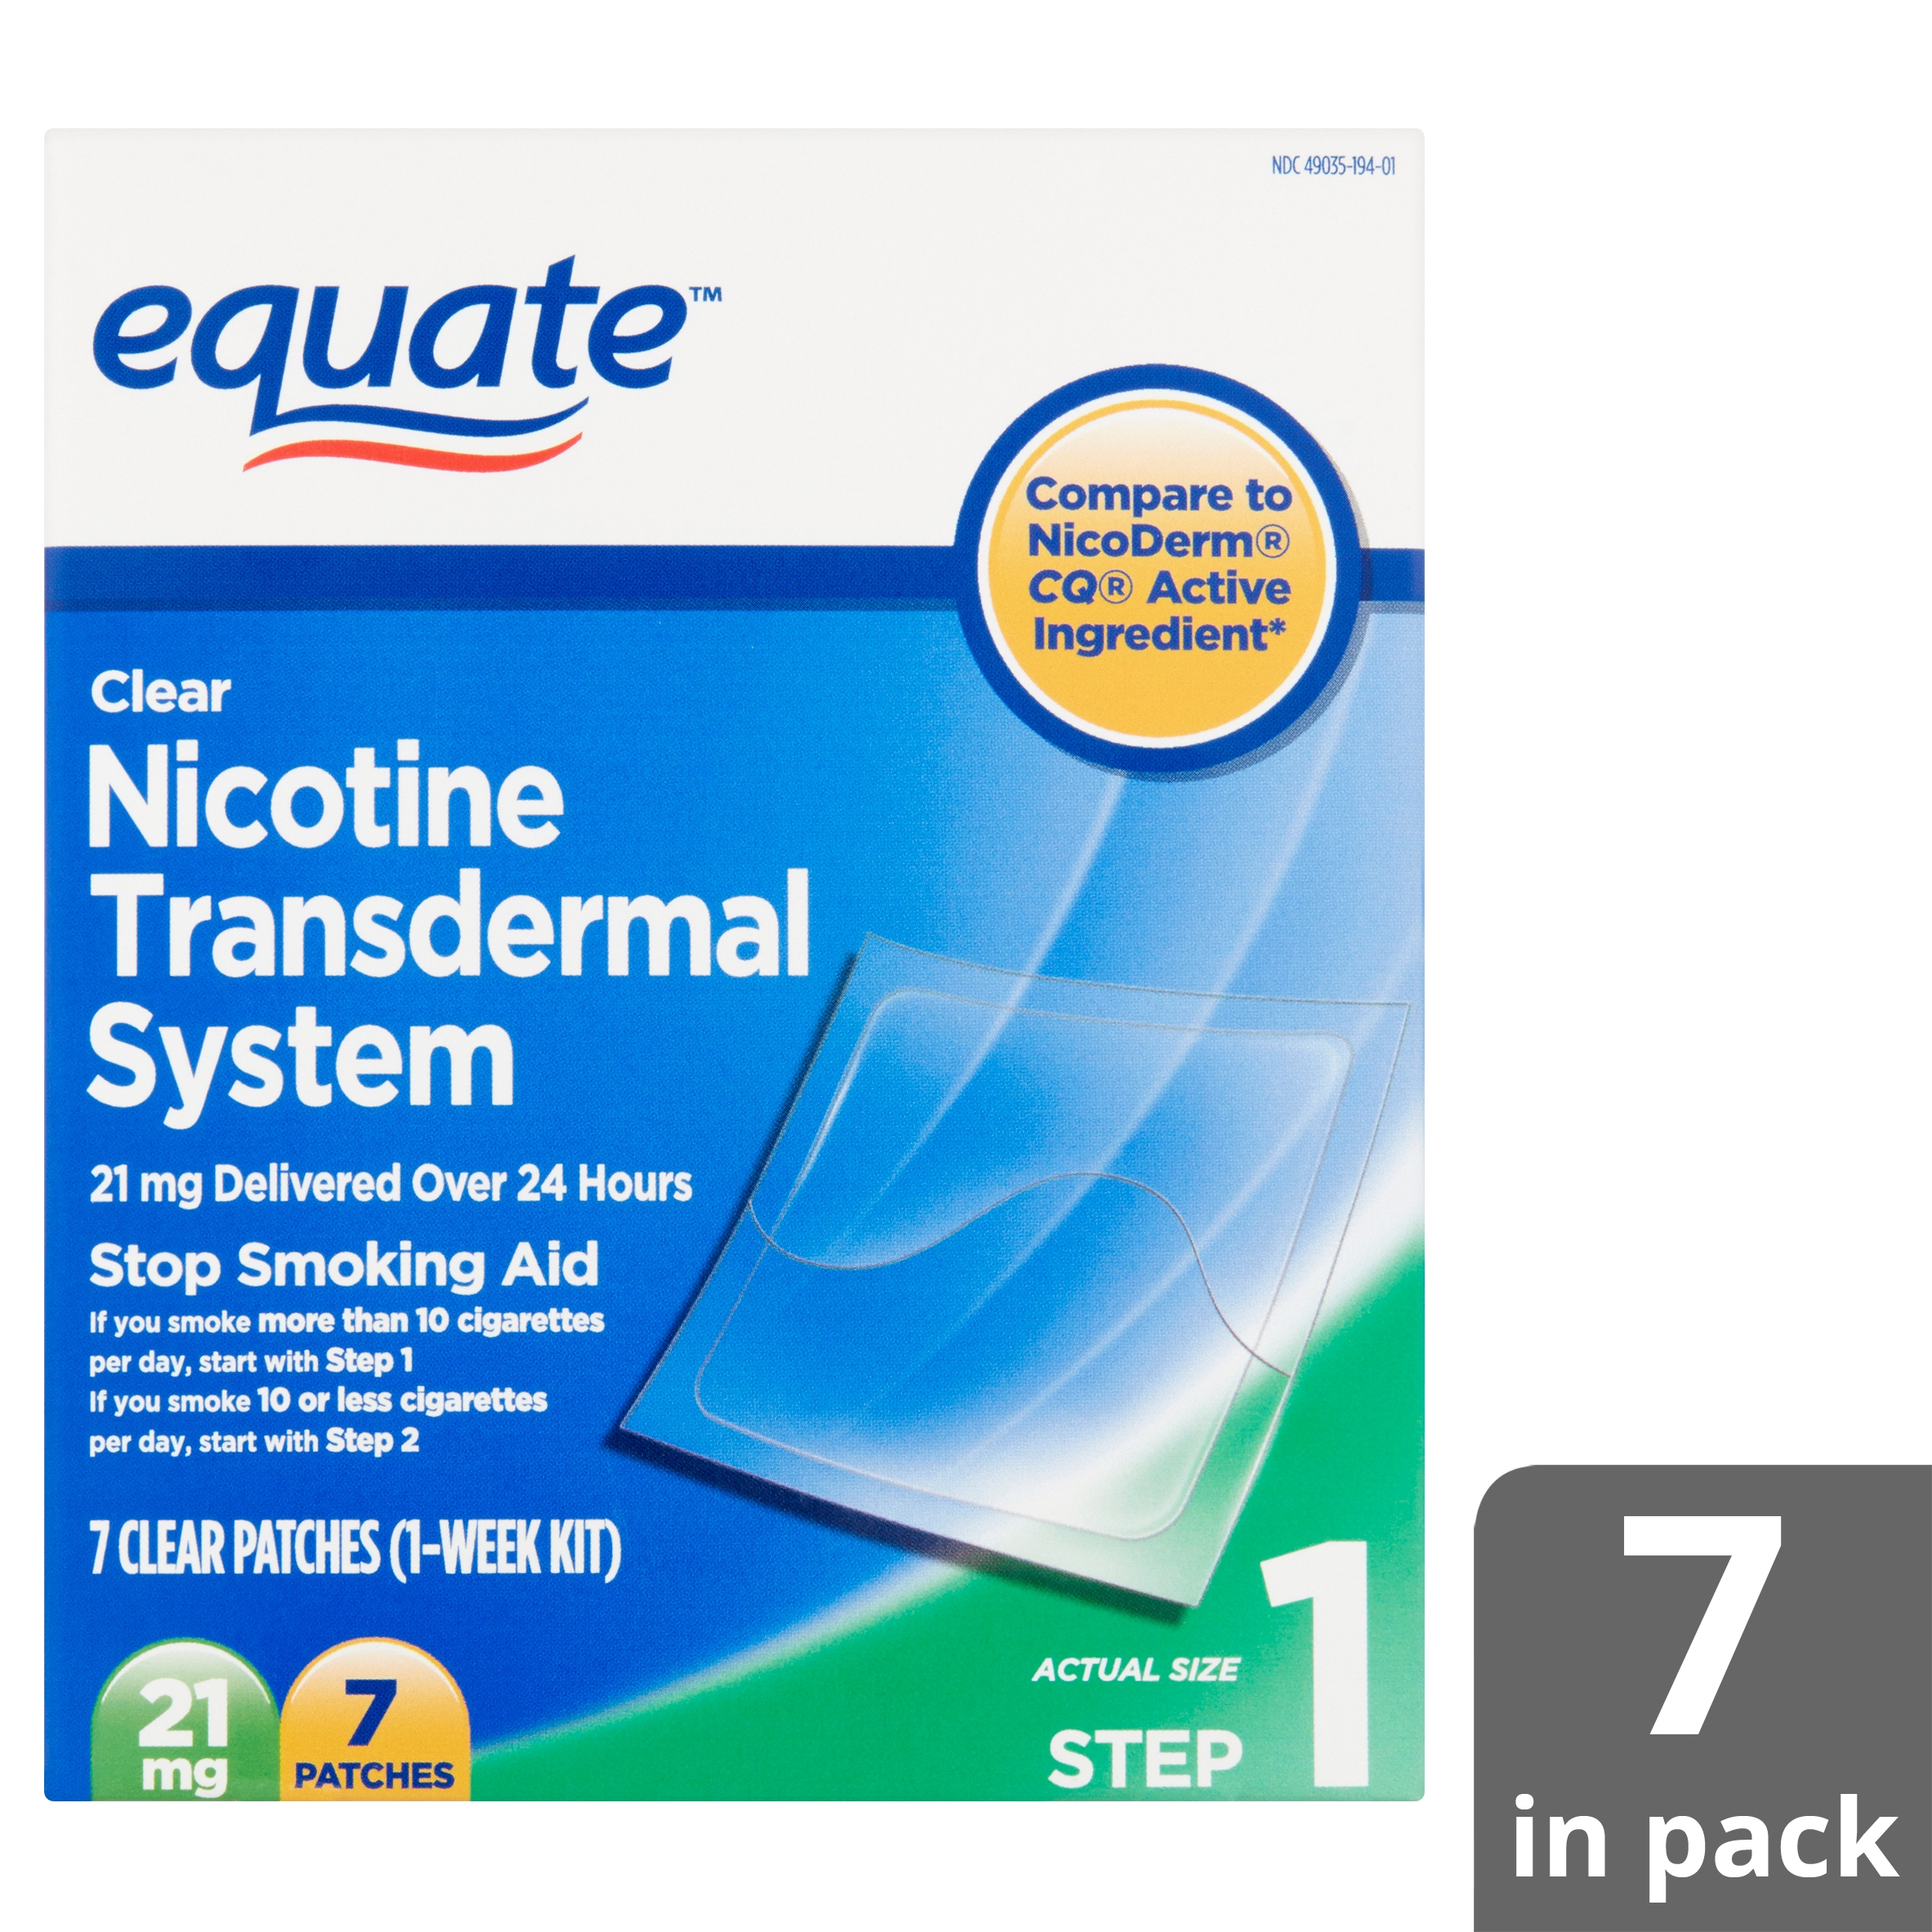 Equate Nicotine Transdermal System Clear Patches, 21 Mg, Step 1, 7 - Free Printable Nicotine Patch Coupons